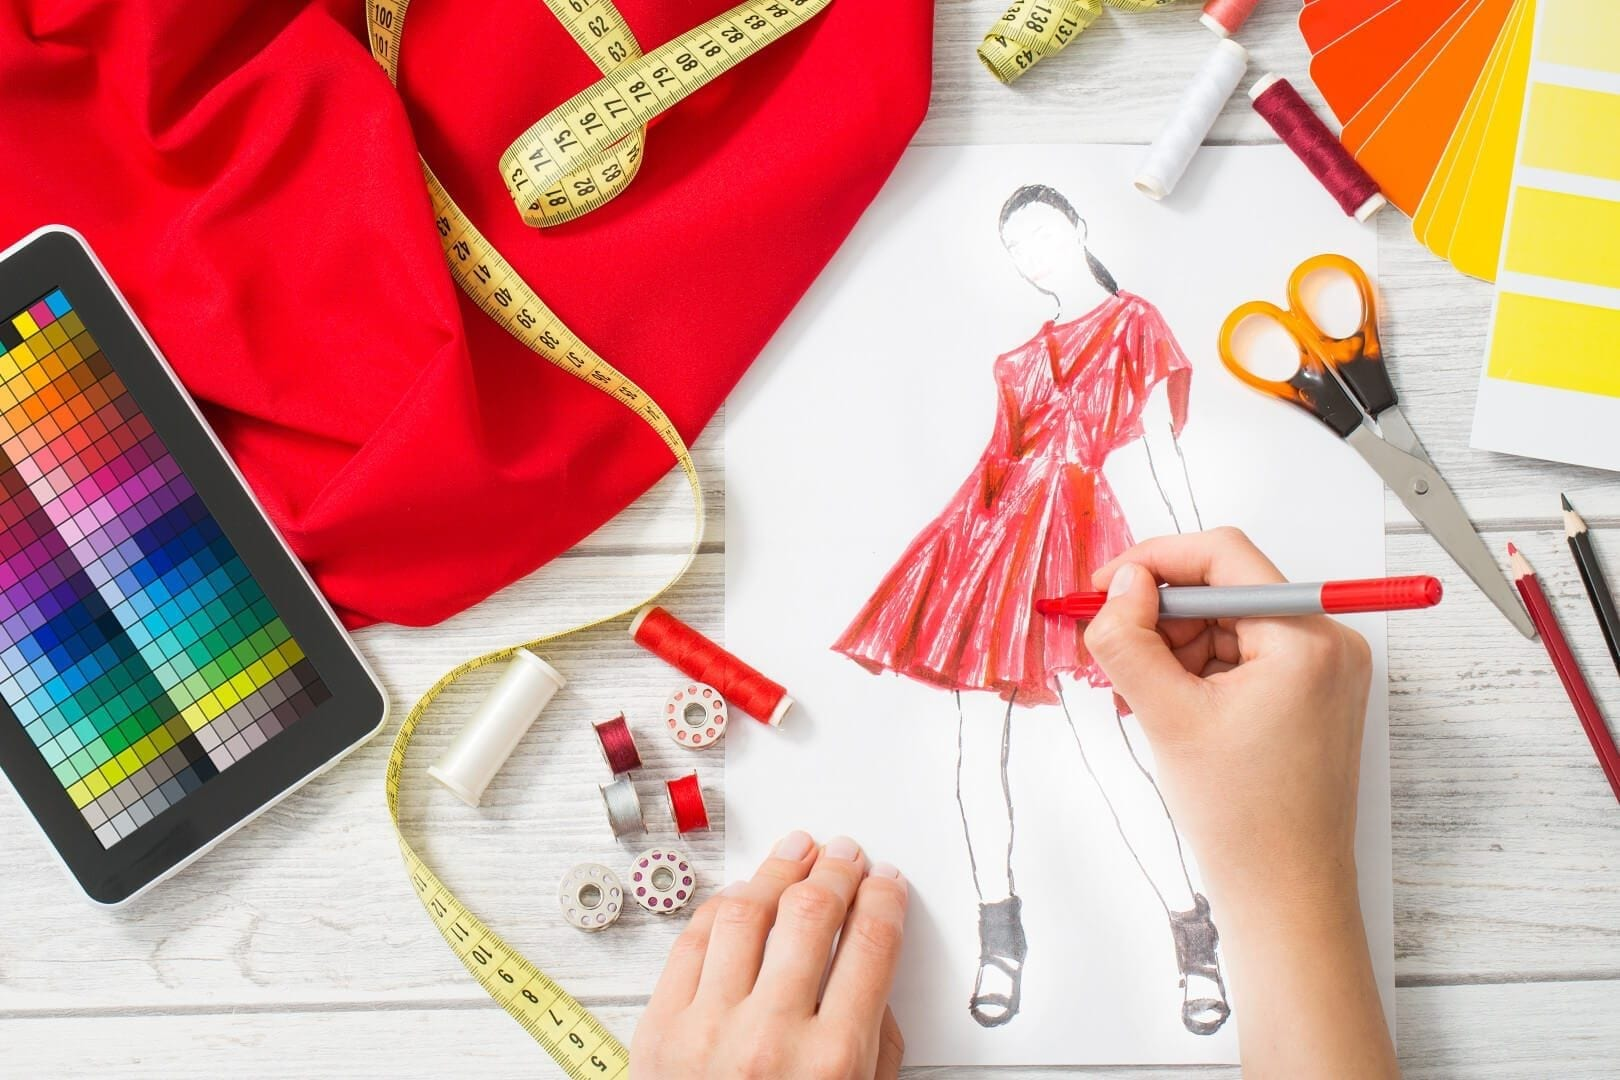 The Best Nj Fashion Camps For Aspiring Designers Best Of Nj